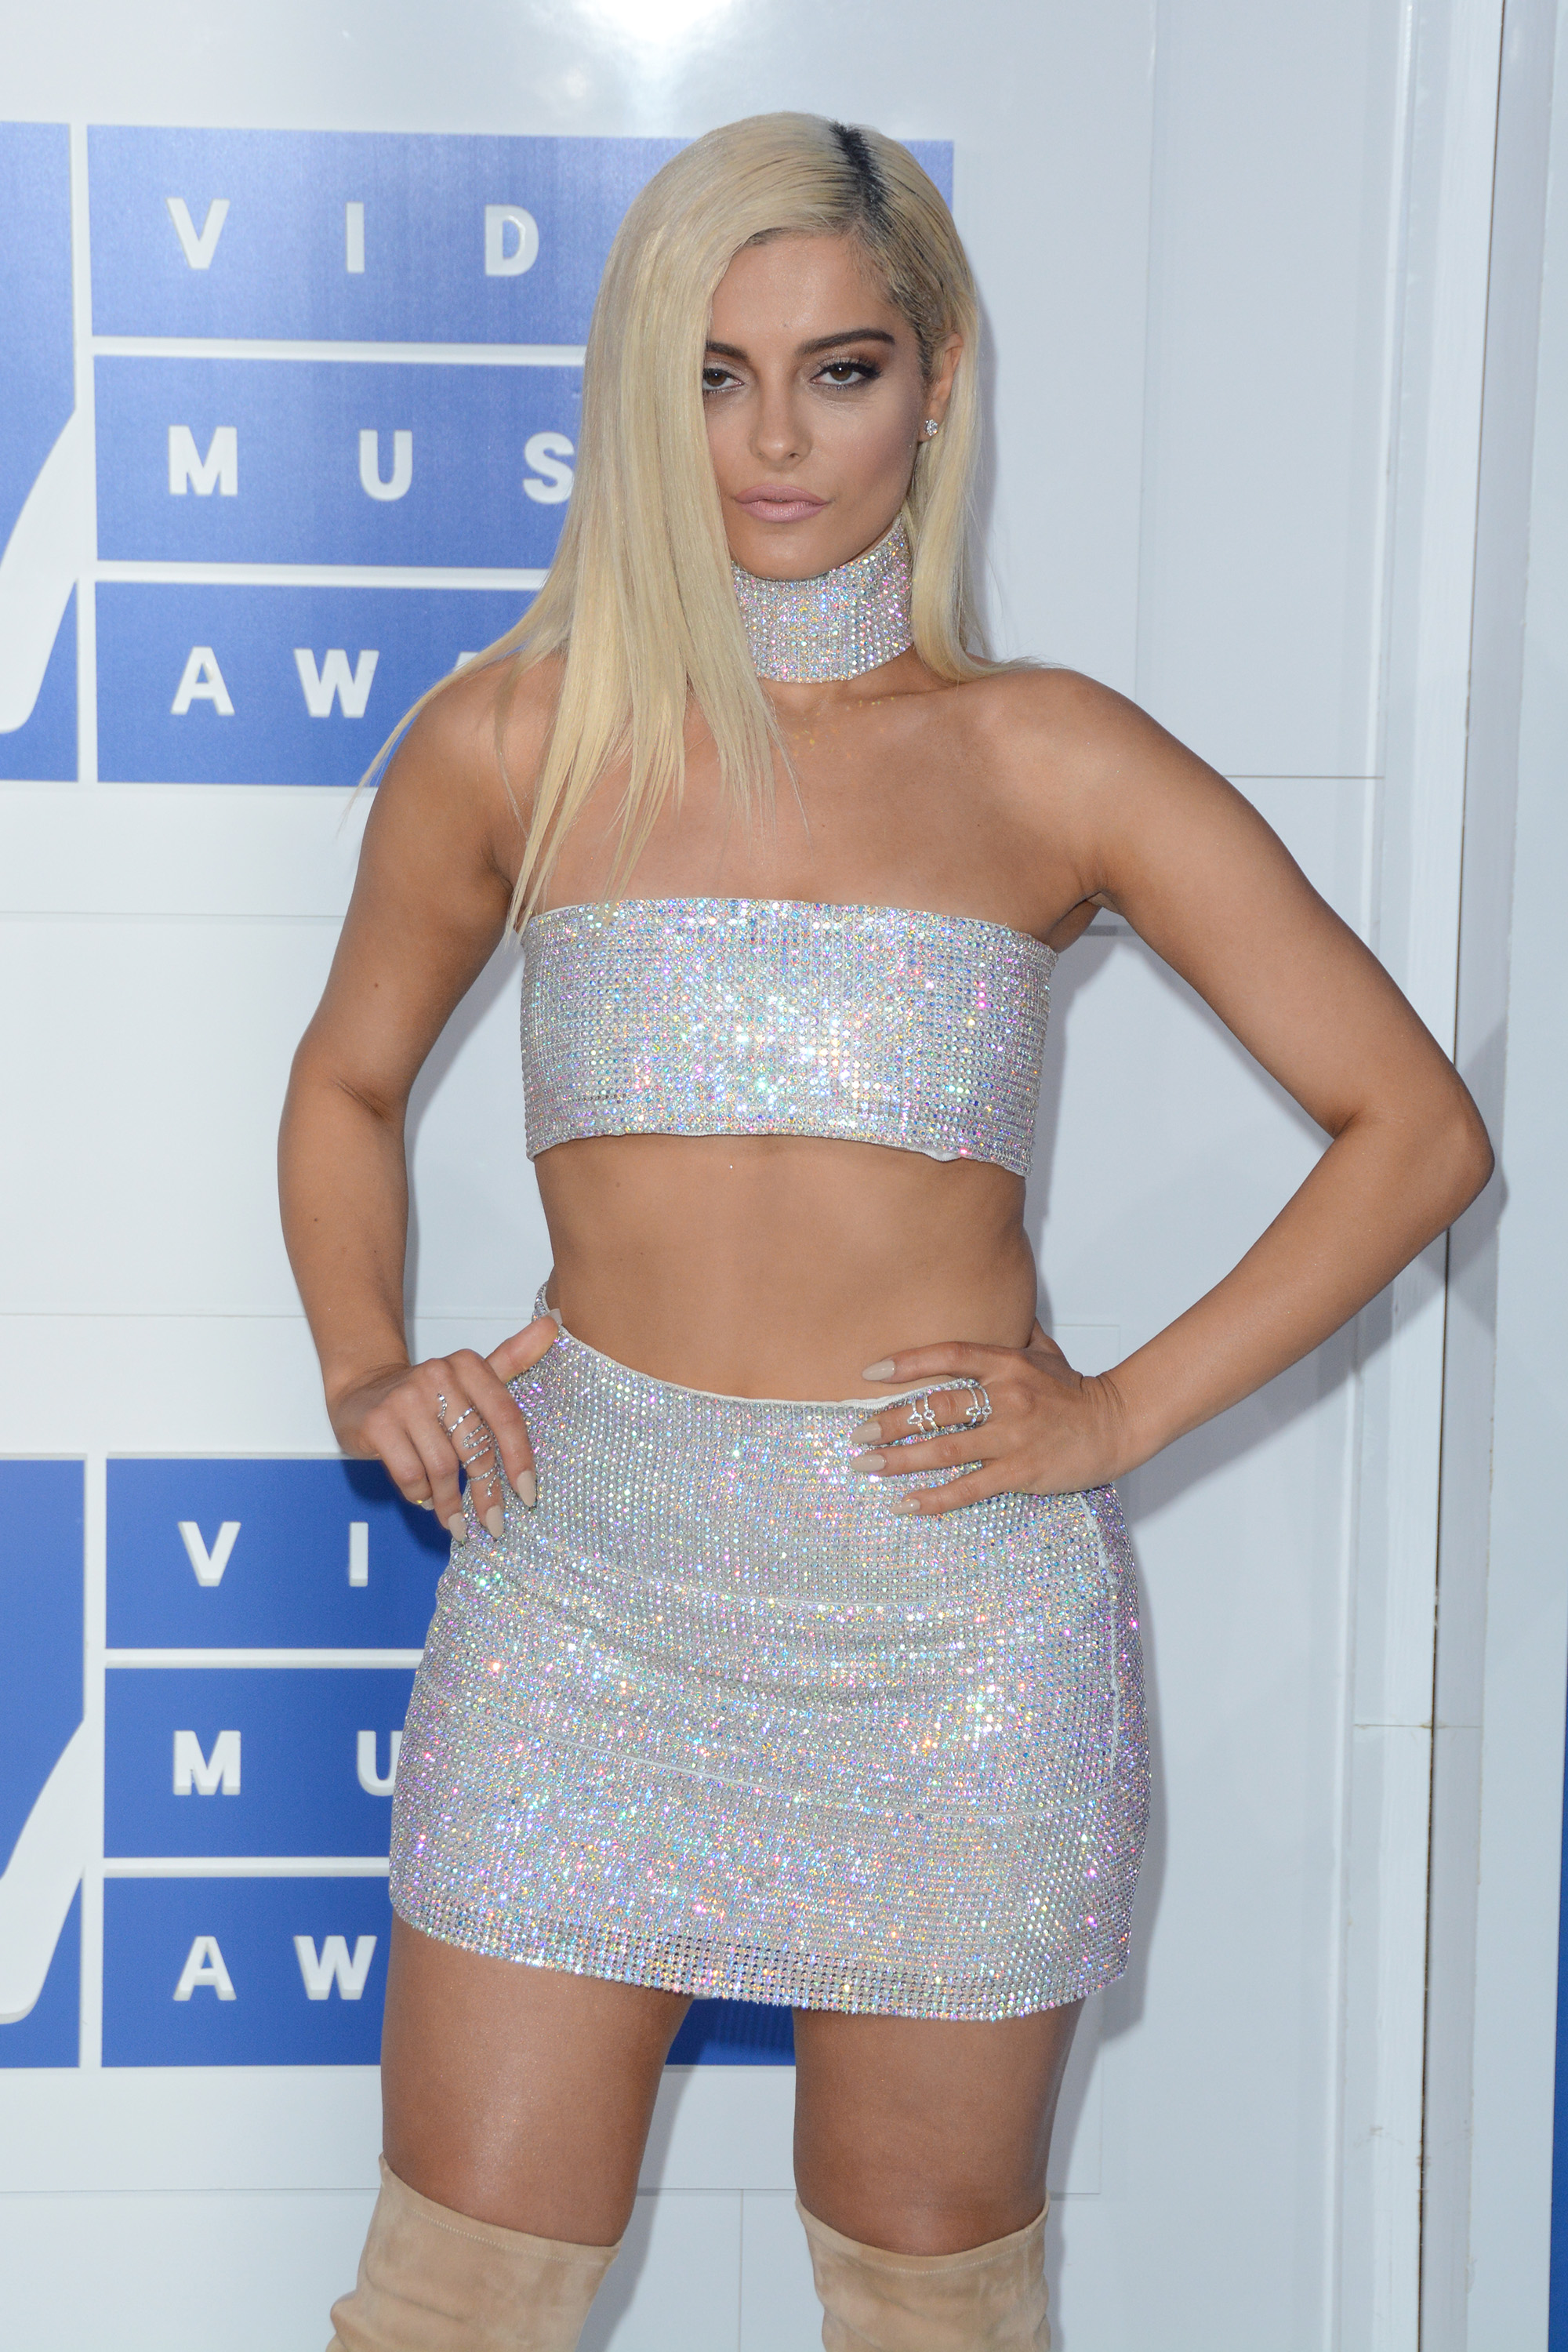 2016 MTV Video Music Awards - Red Carpet Arrivals                                    Featuring: Bebe Rexha                  Where: New York, New York, United States                  When: 29 Aug 2016                  Credit: Ivan Nikolov/WENN.com